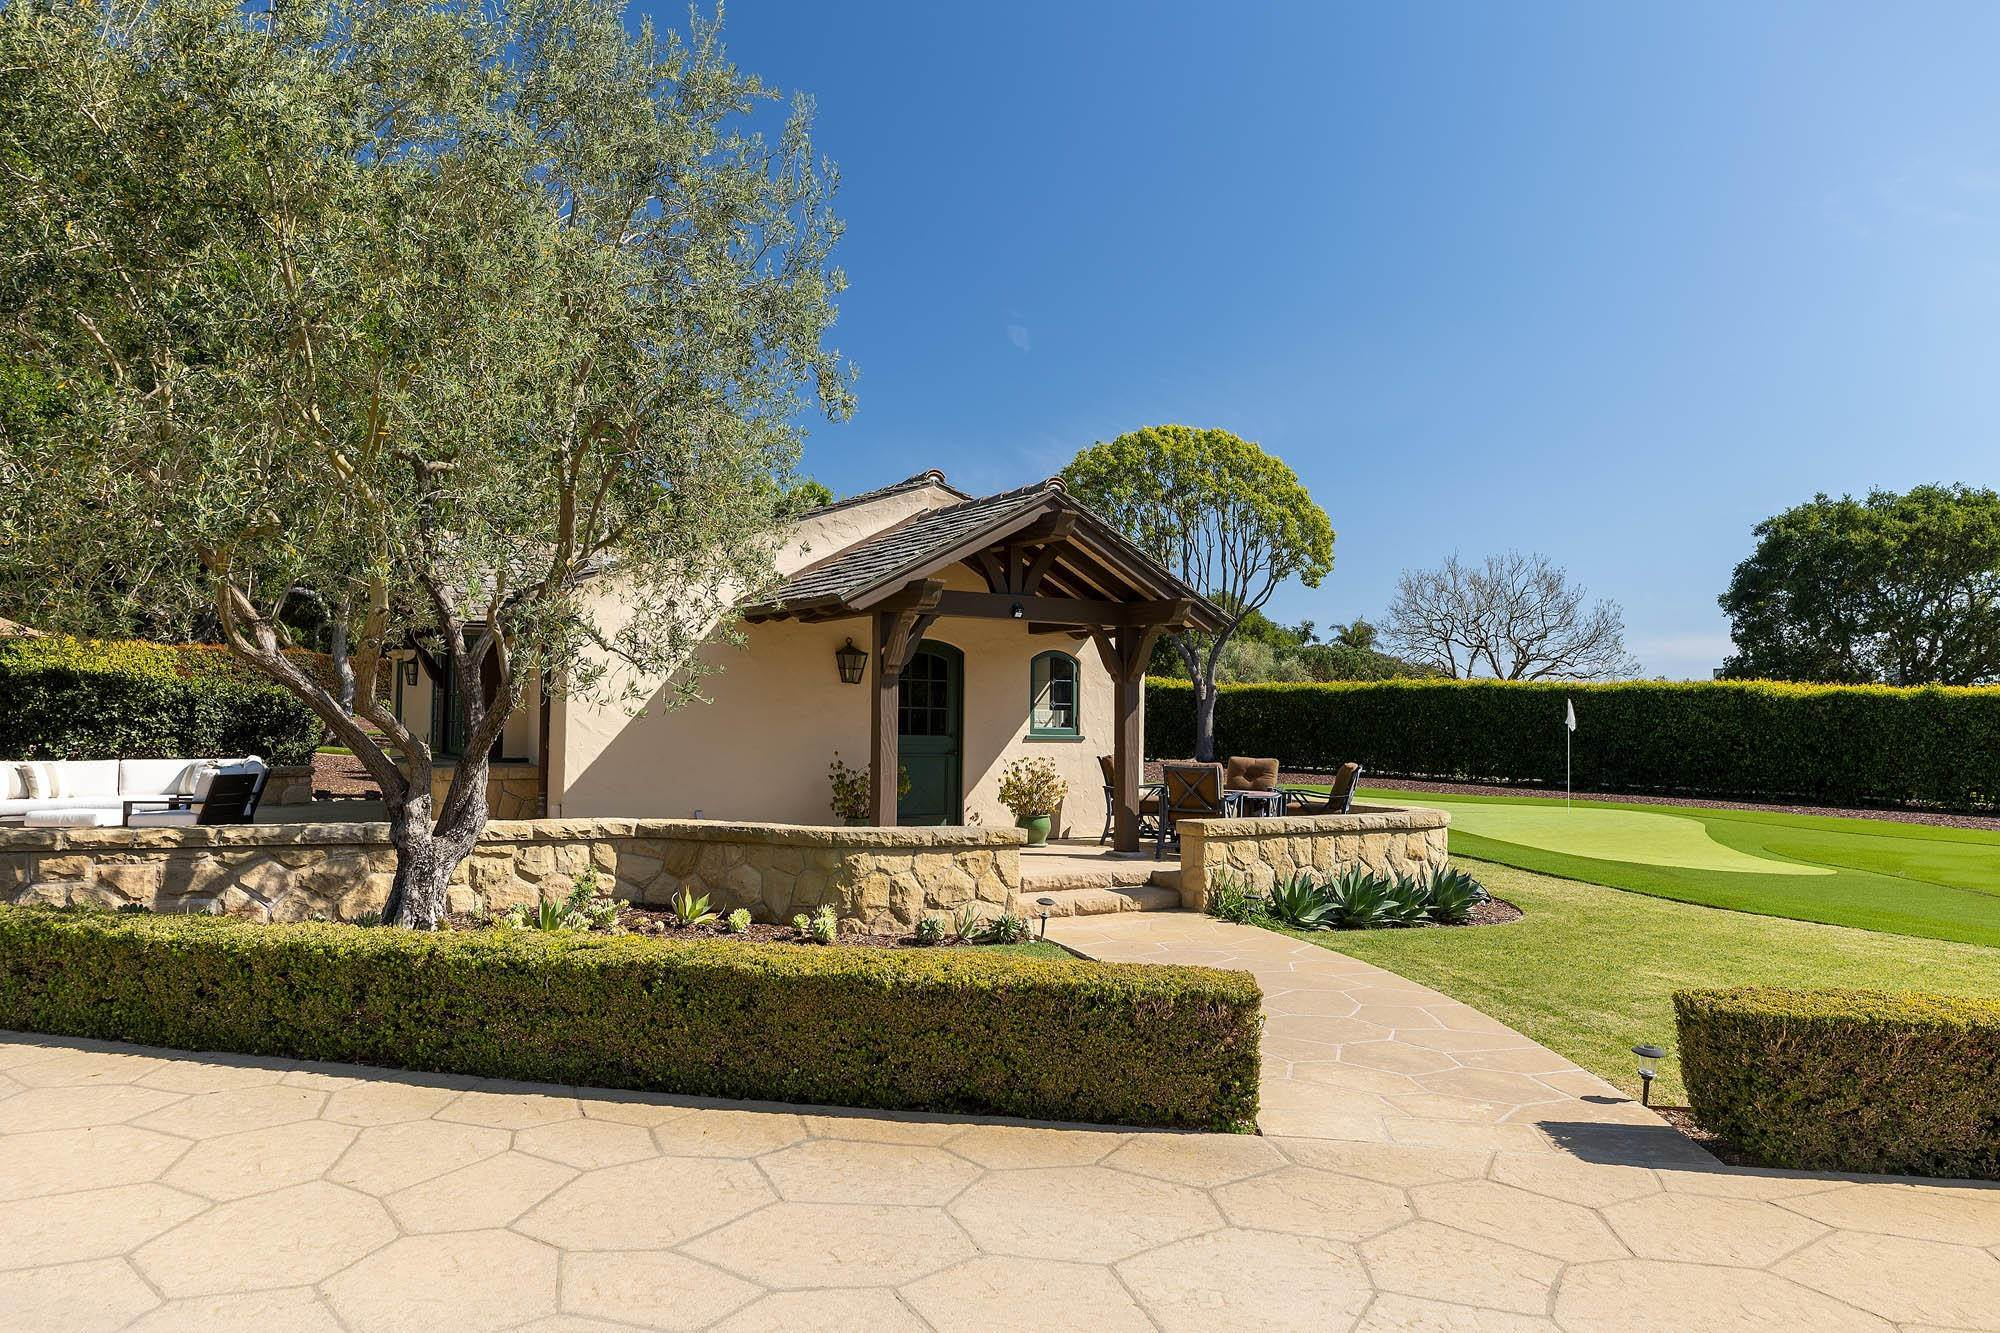 20. Estate for Sale at 4180 Cresta Avenue Santa Barbara, California 93110 United States